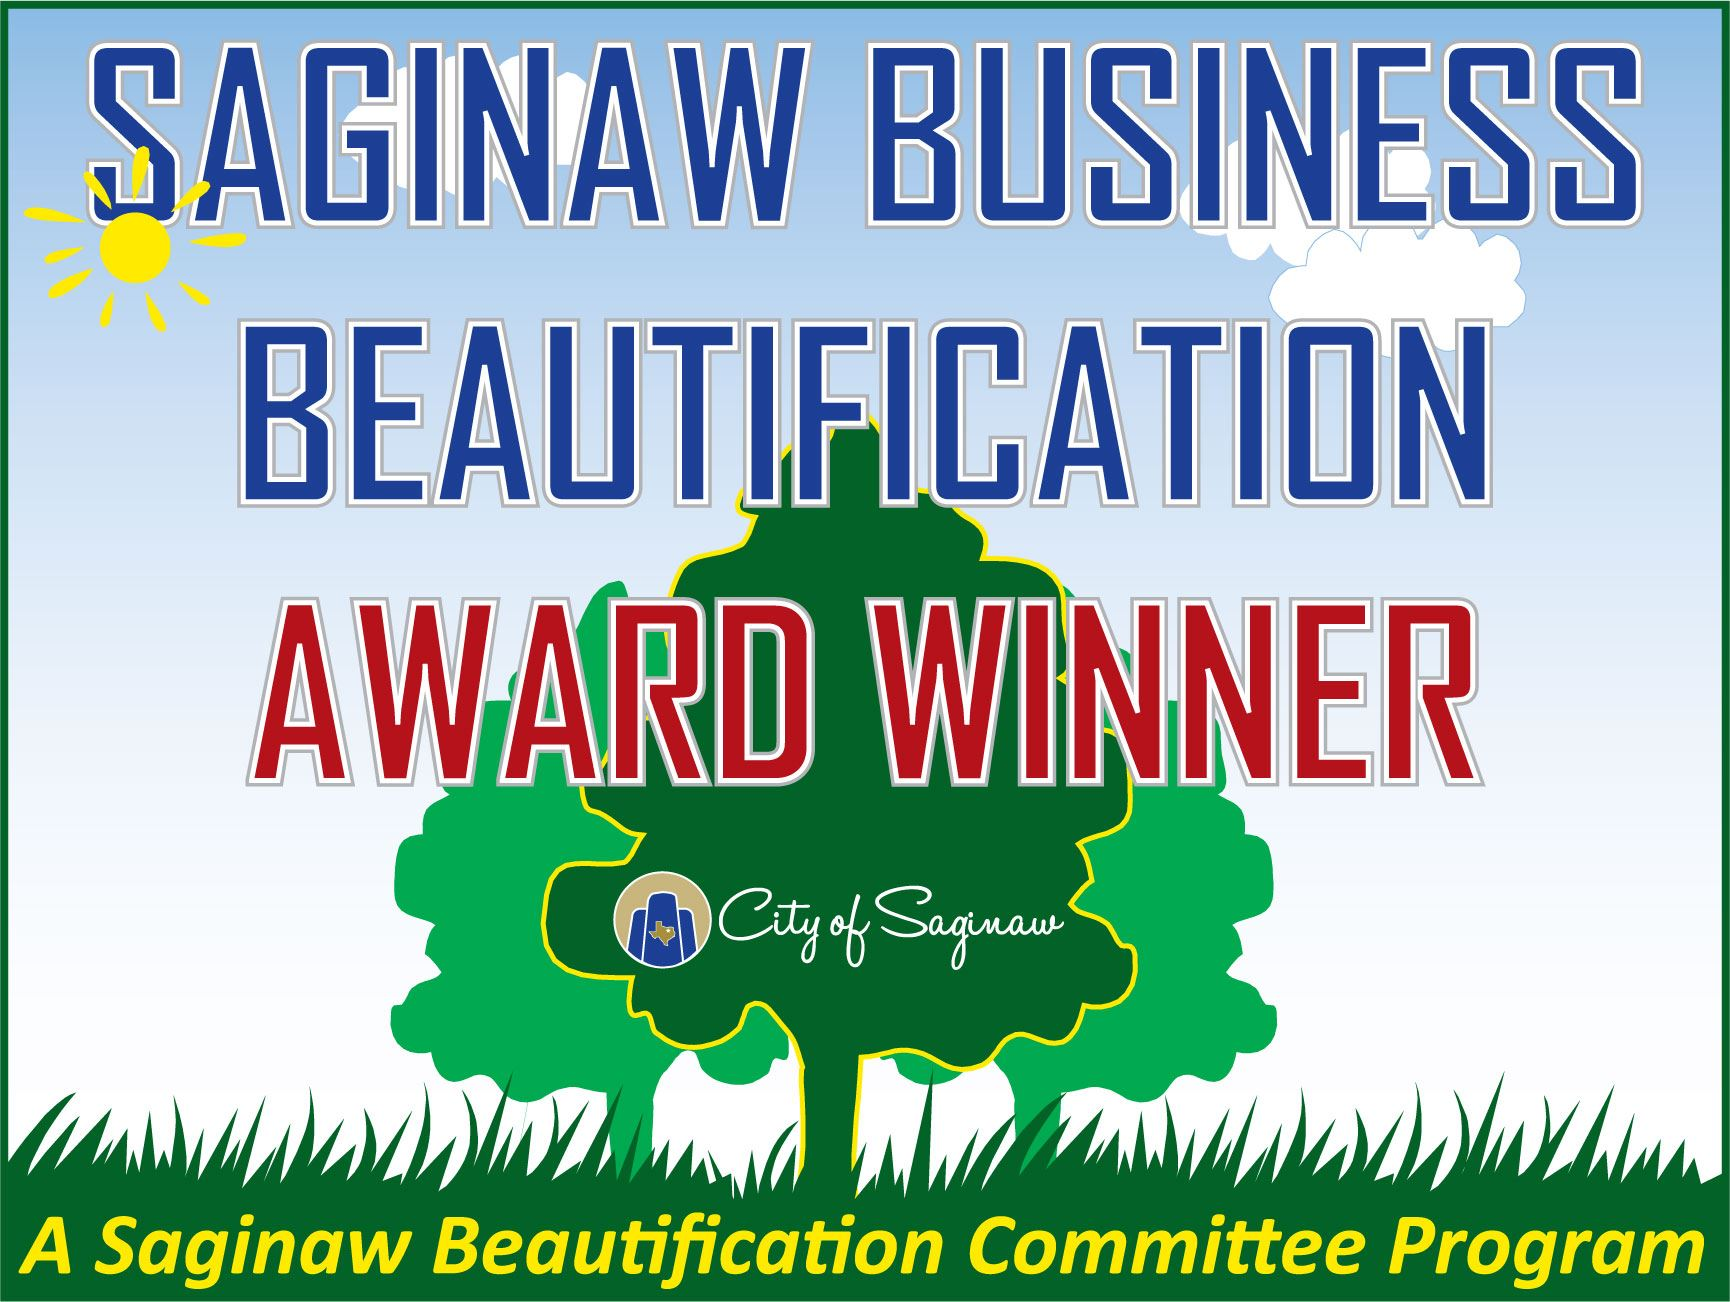 Saginaw Business Beautification Award Winner